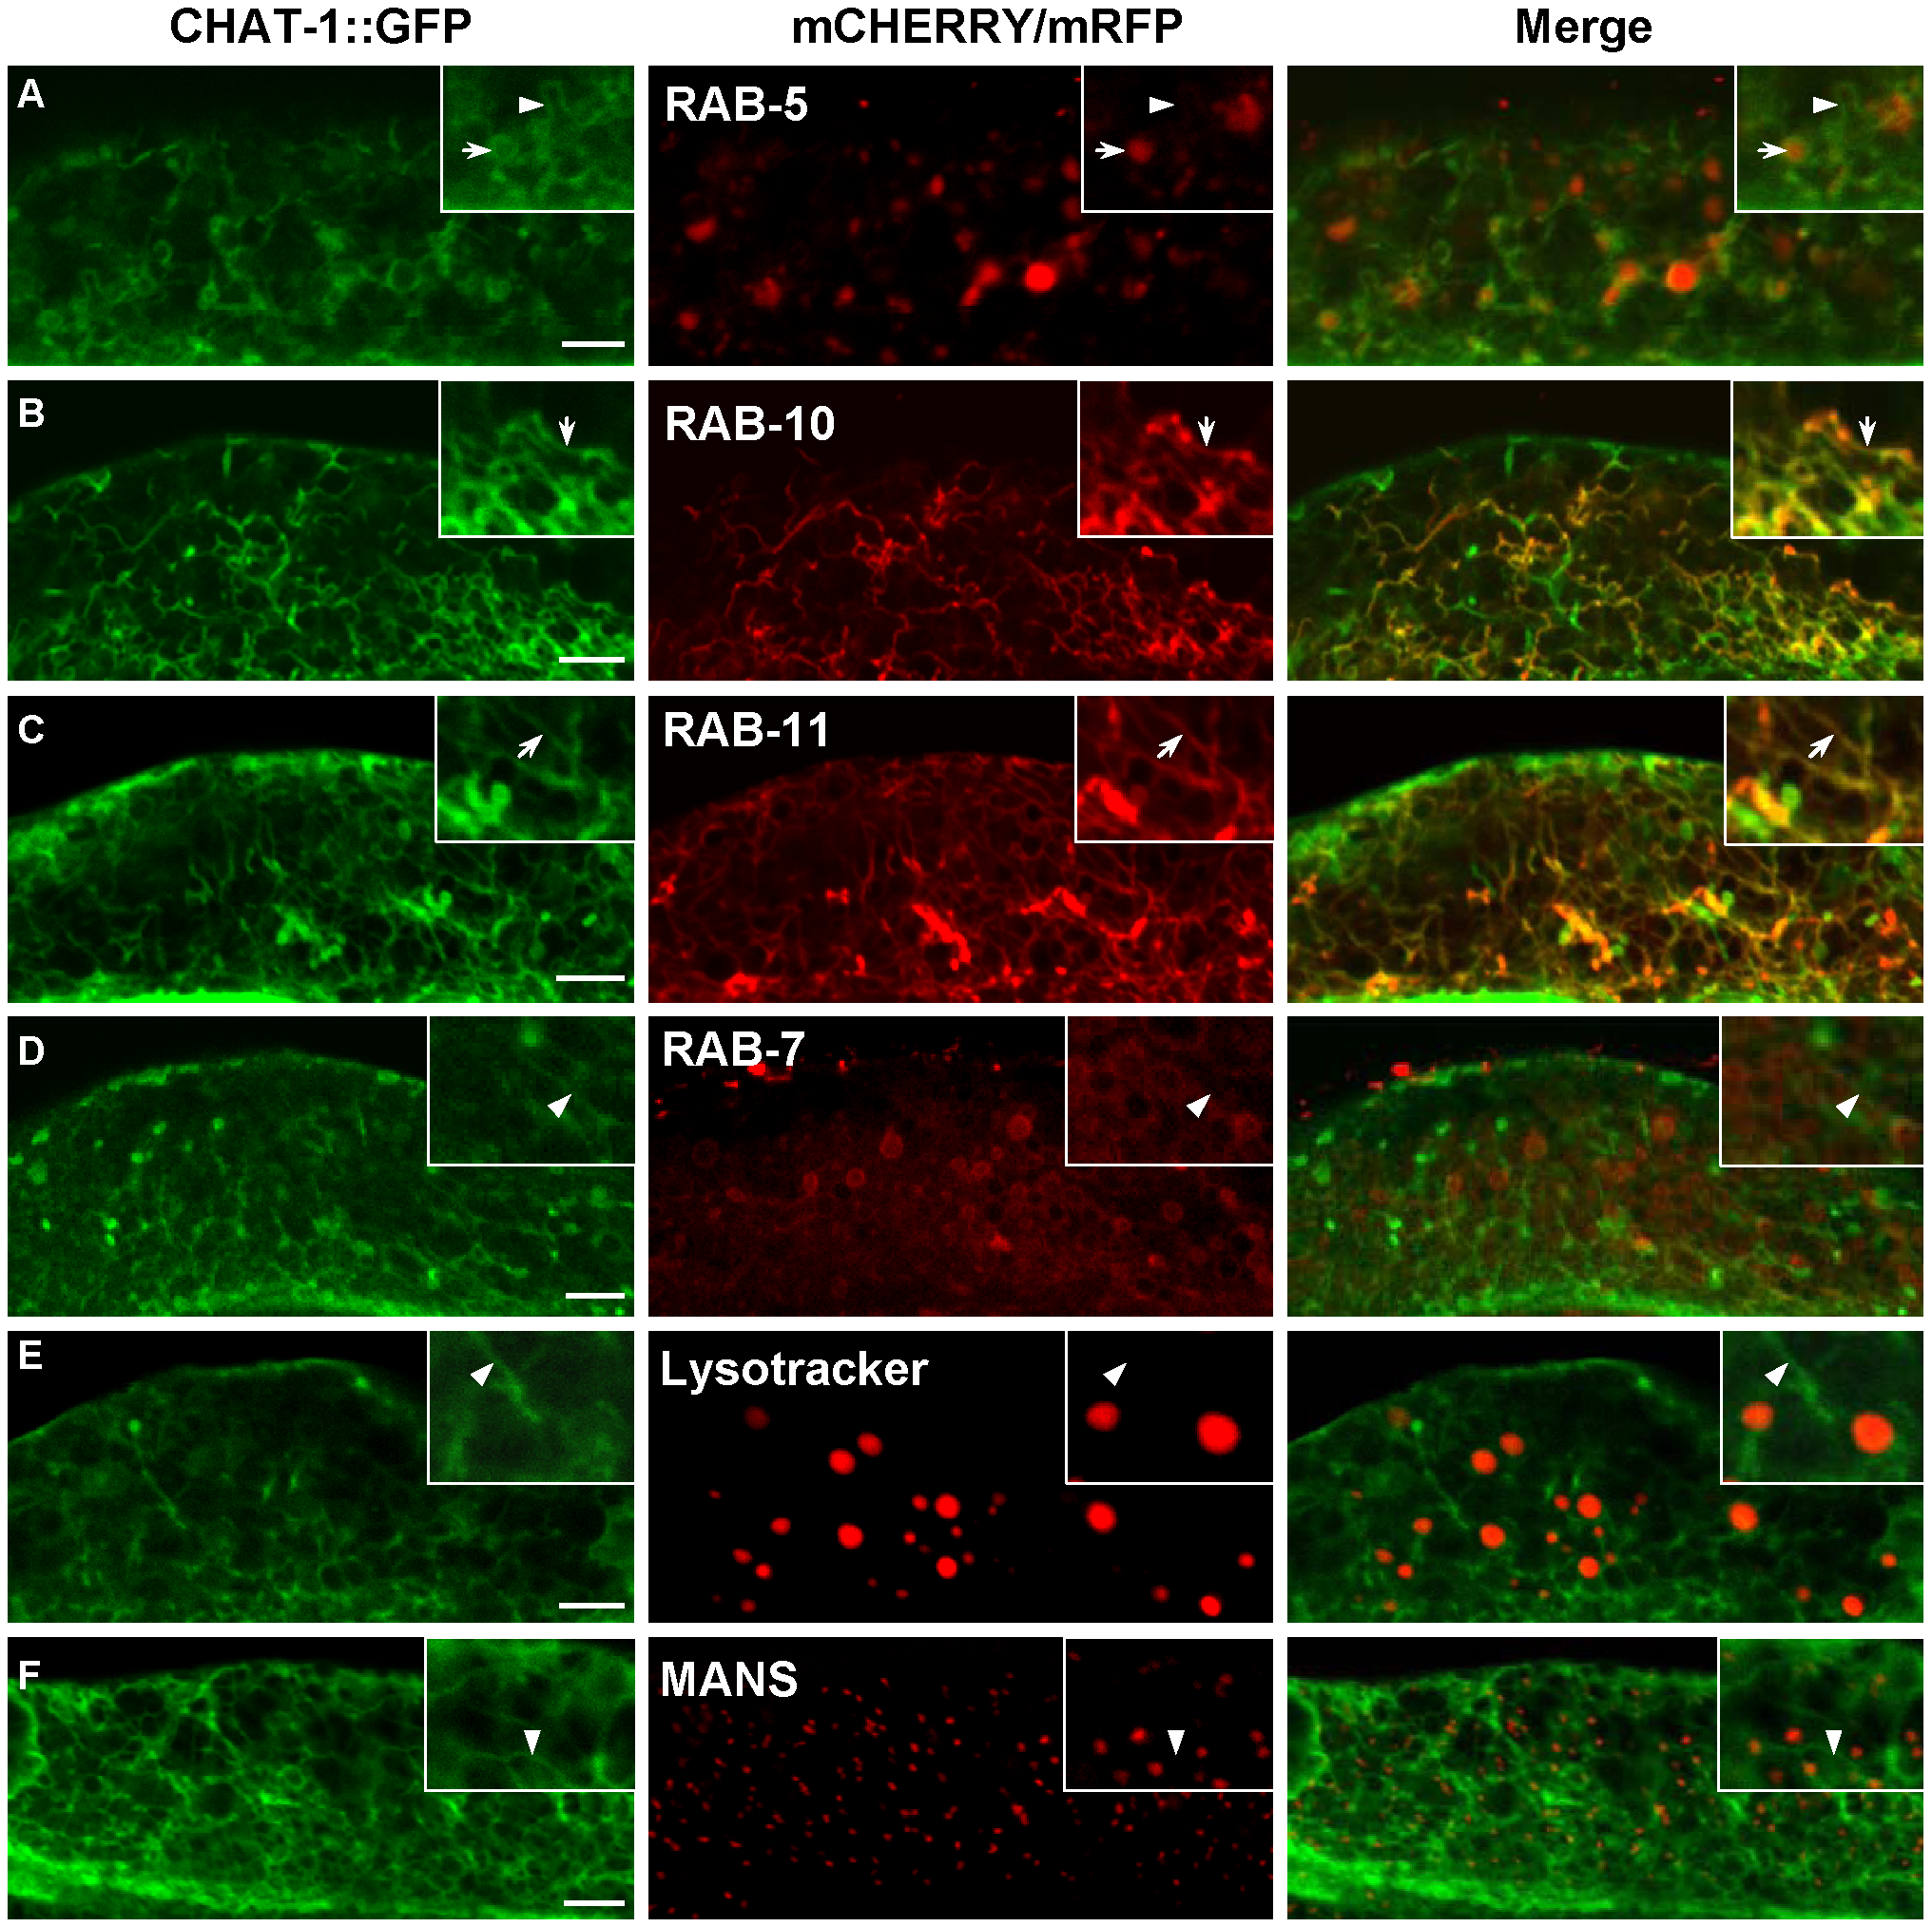 CHAT-1::GFP labels tubular structures in the intestine.